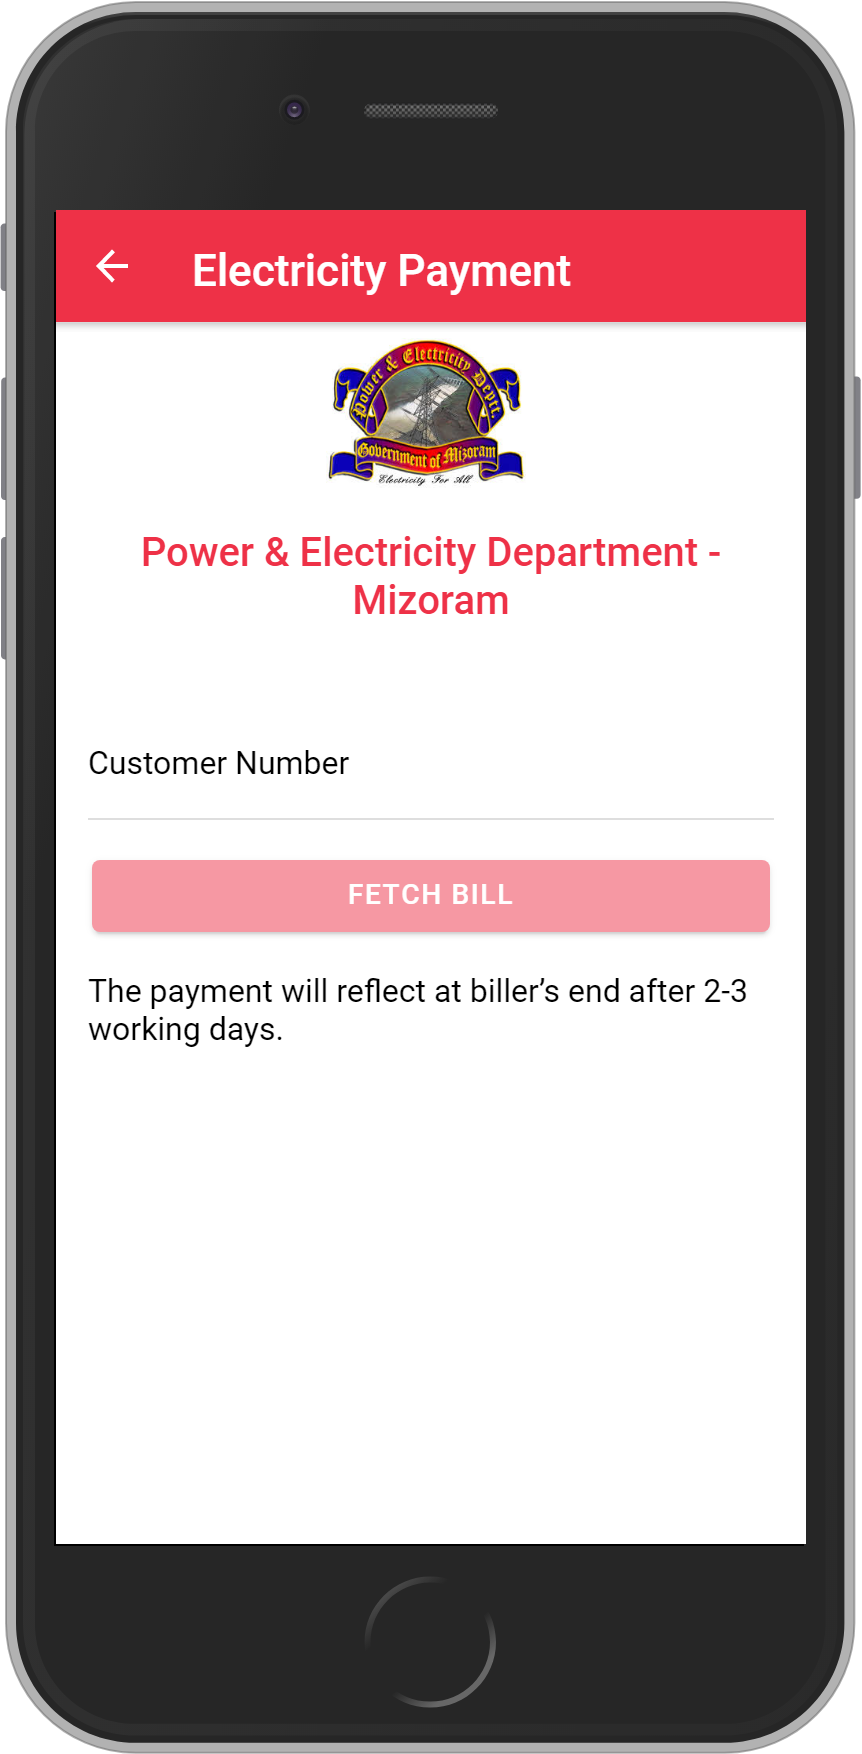 Get UNLIMITED <b>0.1%</b> CASHBACK on Power & Electricity Department – Mizoram Bill Payment.